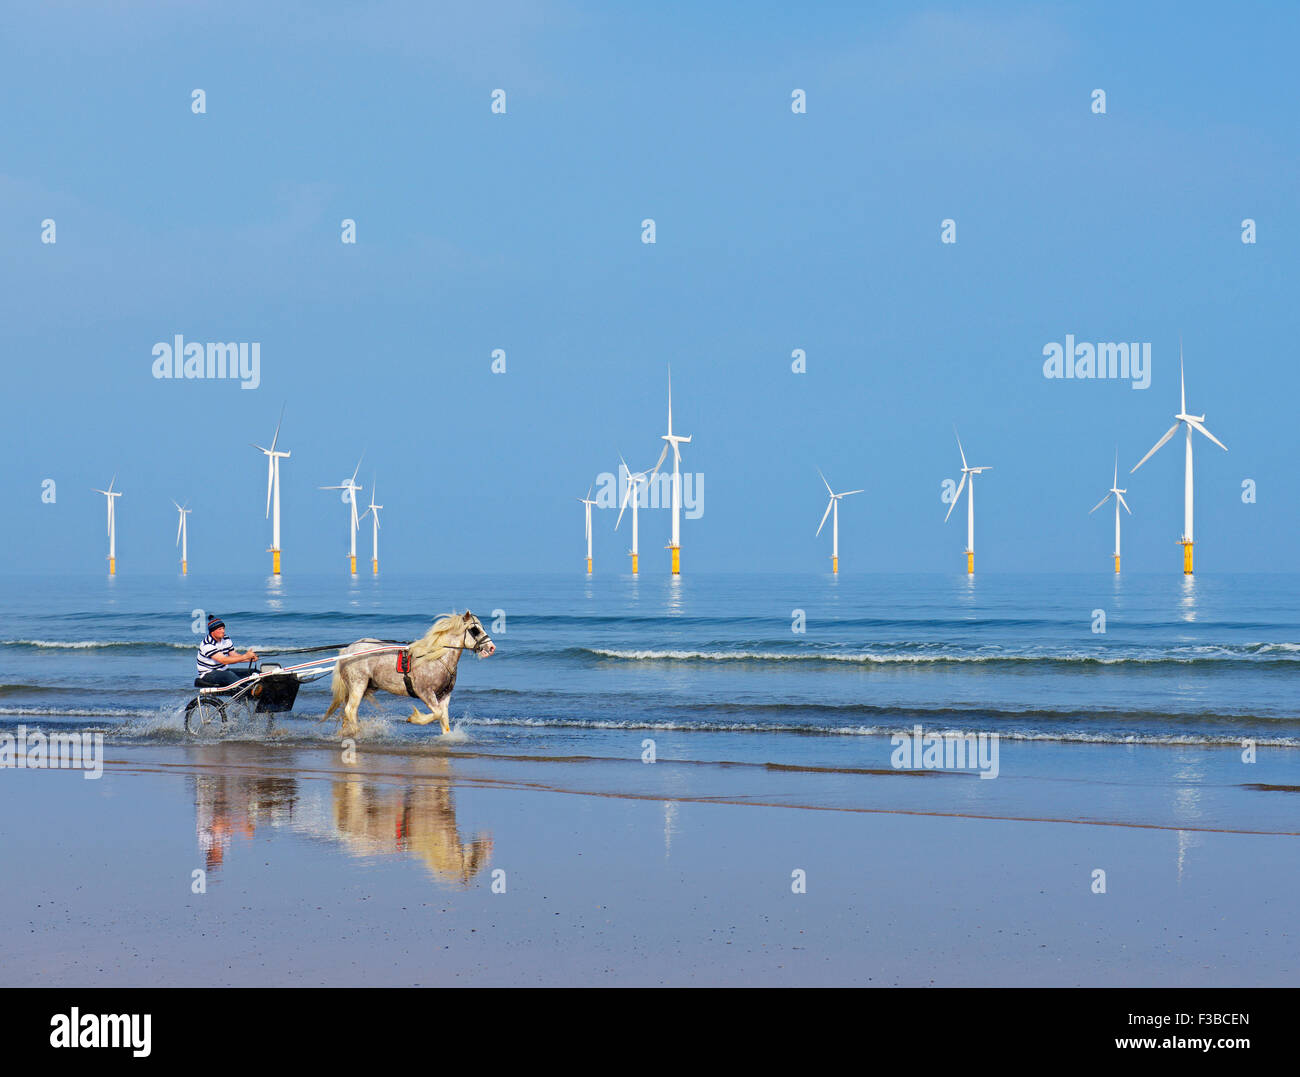 Man with horse and trap, galloping through the shallows on the beach at Redcar, Cleveland, England UK - Stock Image